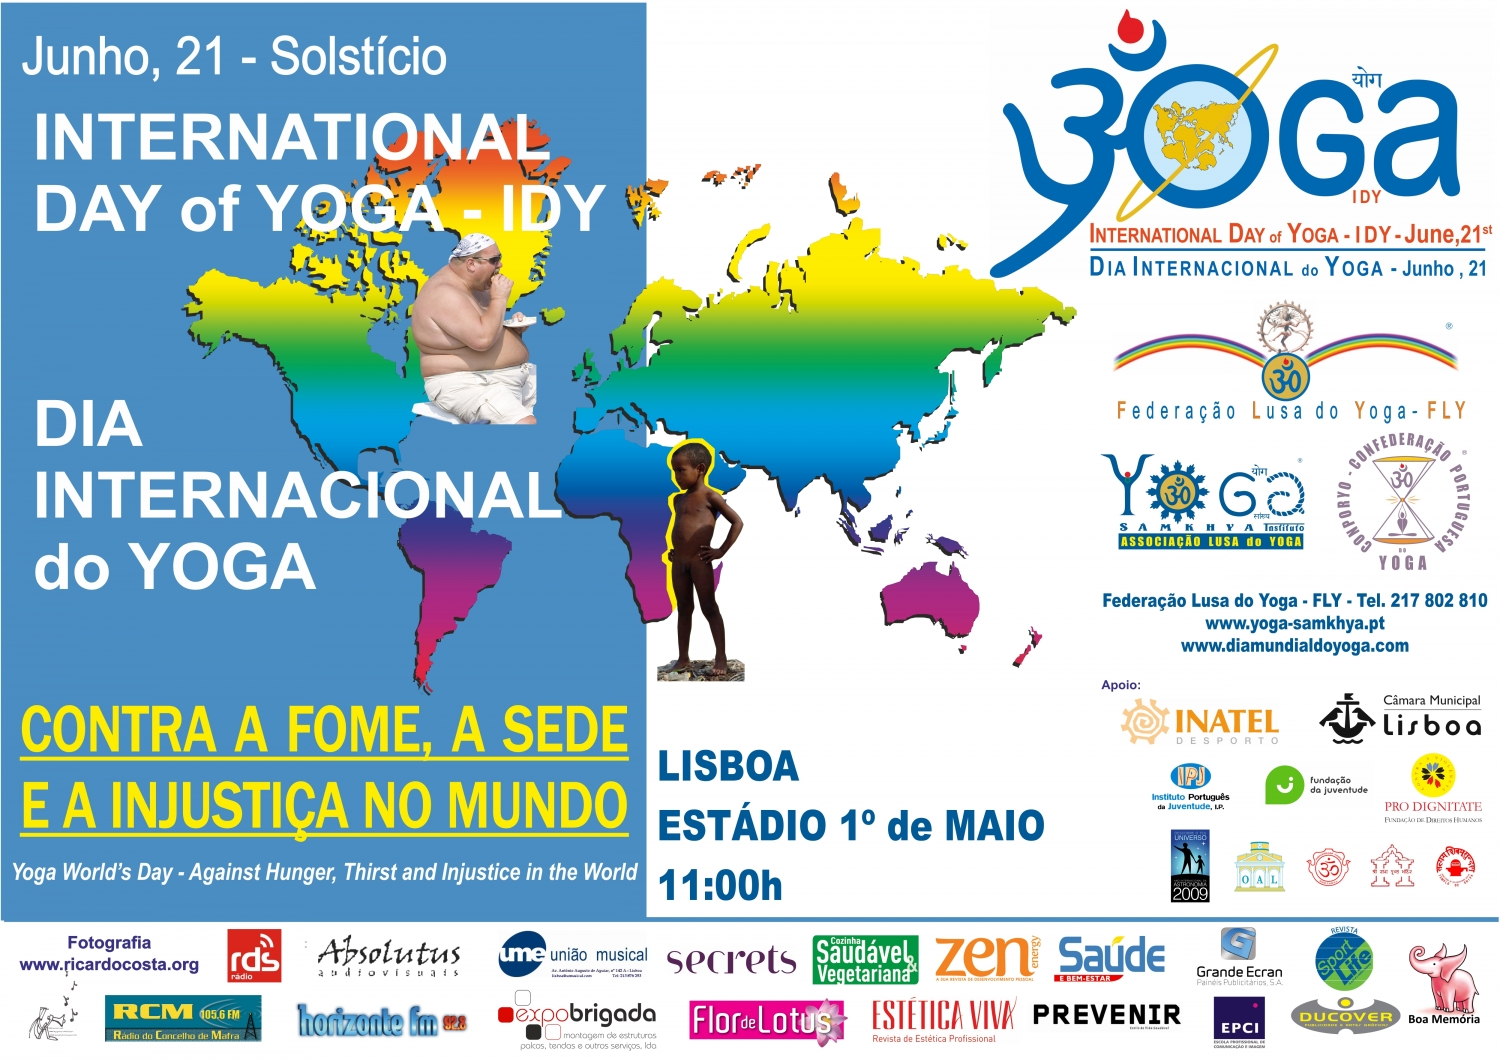 International Day of Yoga - IDY - 2009, Lisboa